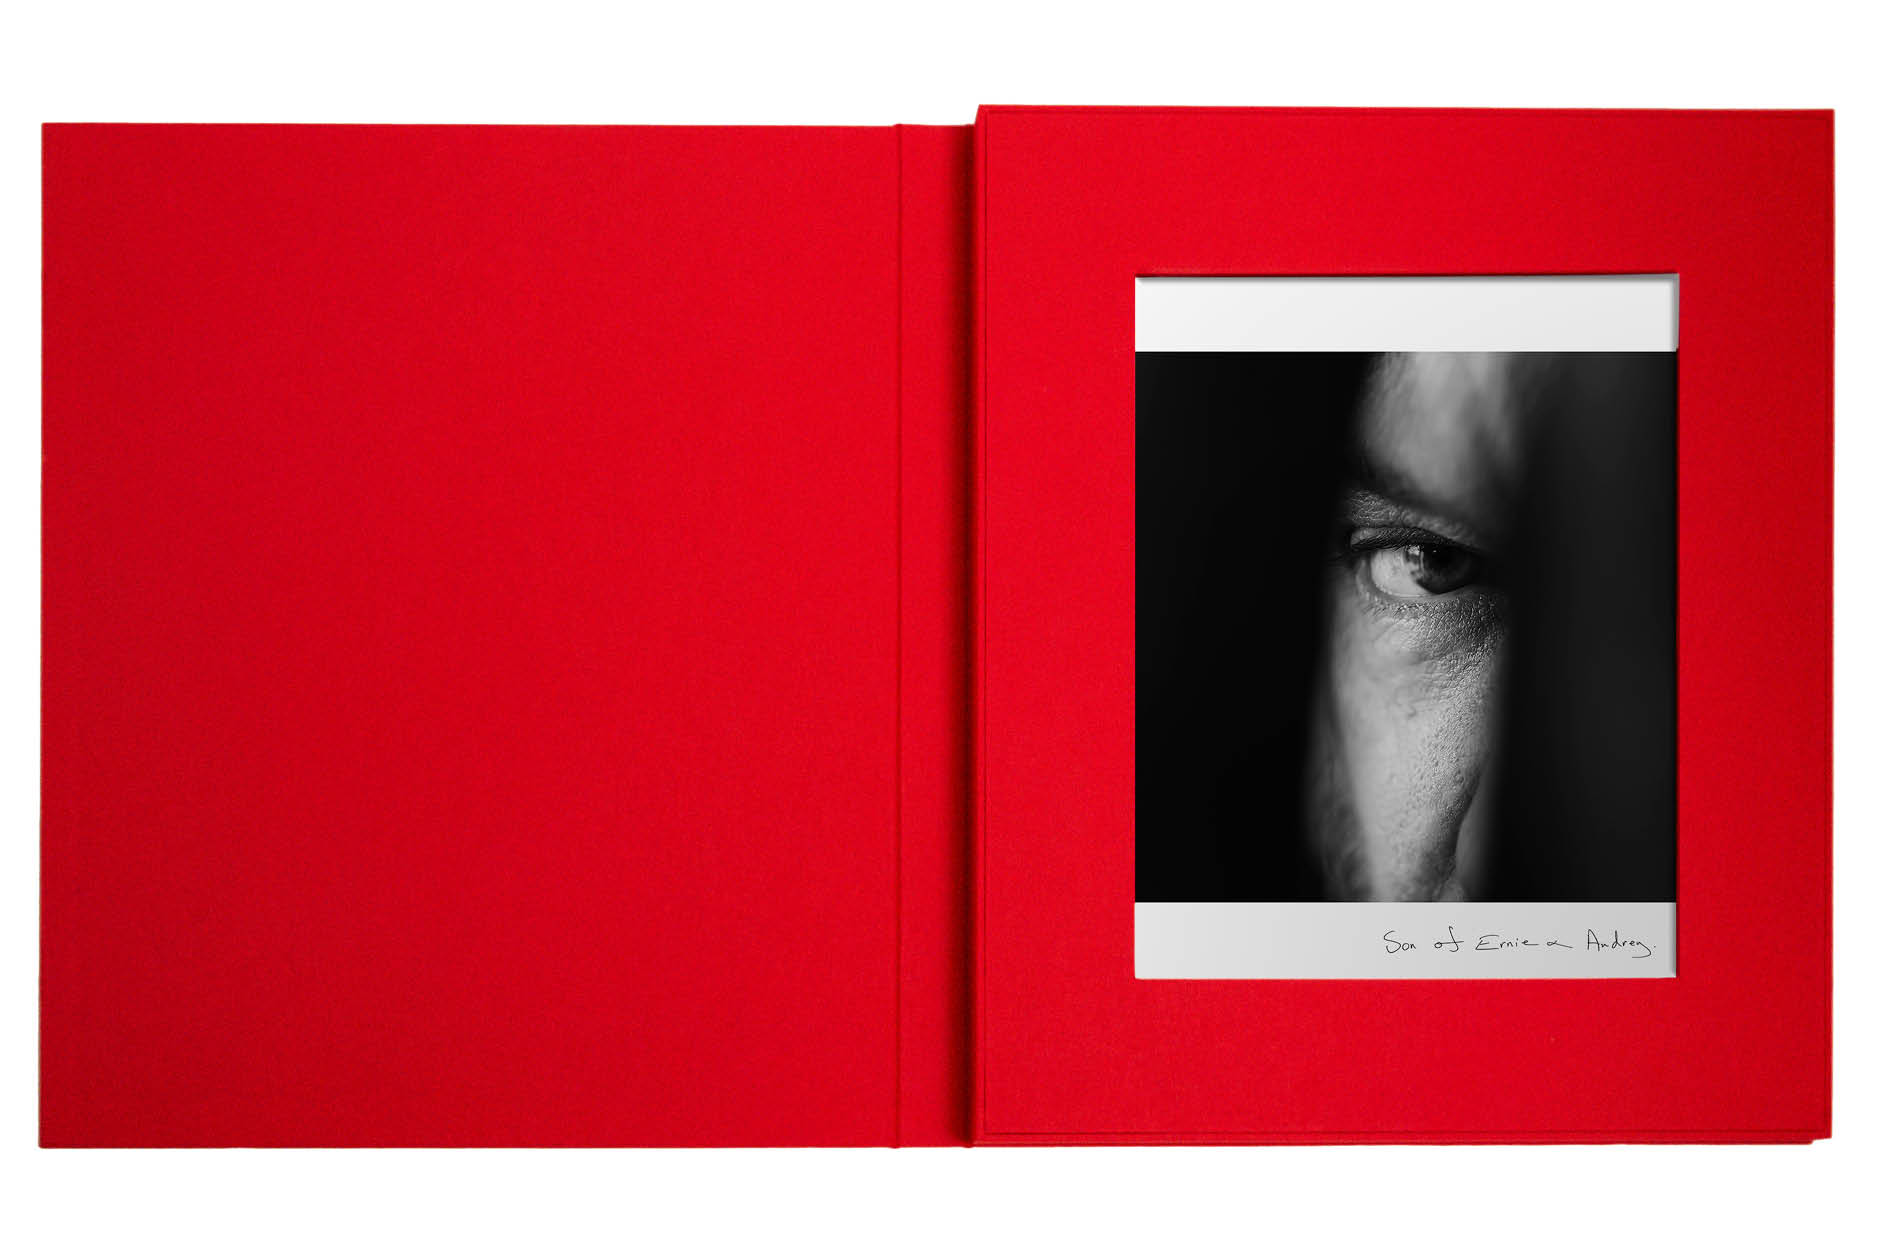 Anna Gabriel's limited edition box set for her upcoming Eye-D book release designed by DTE